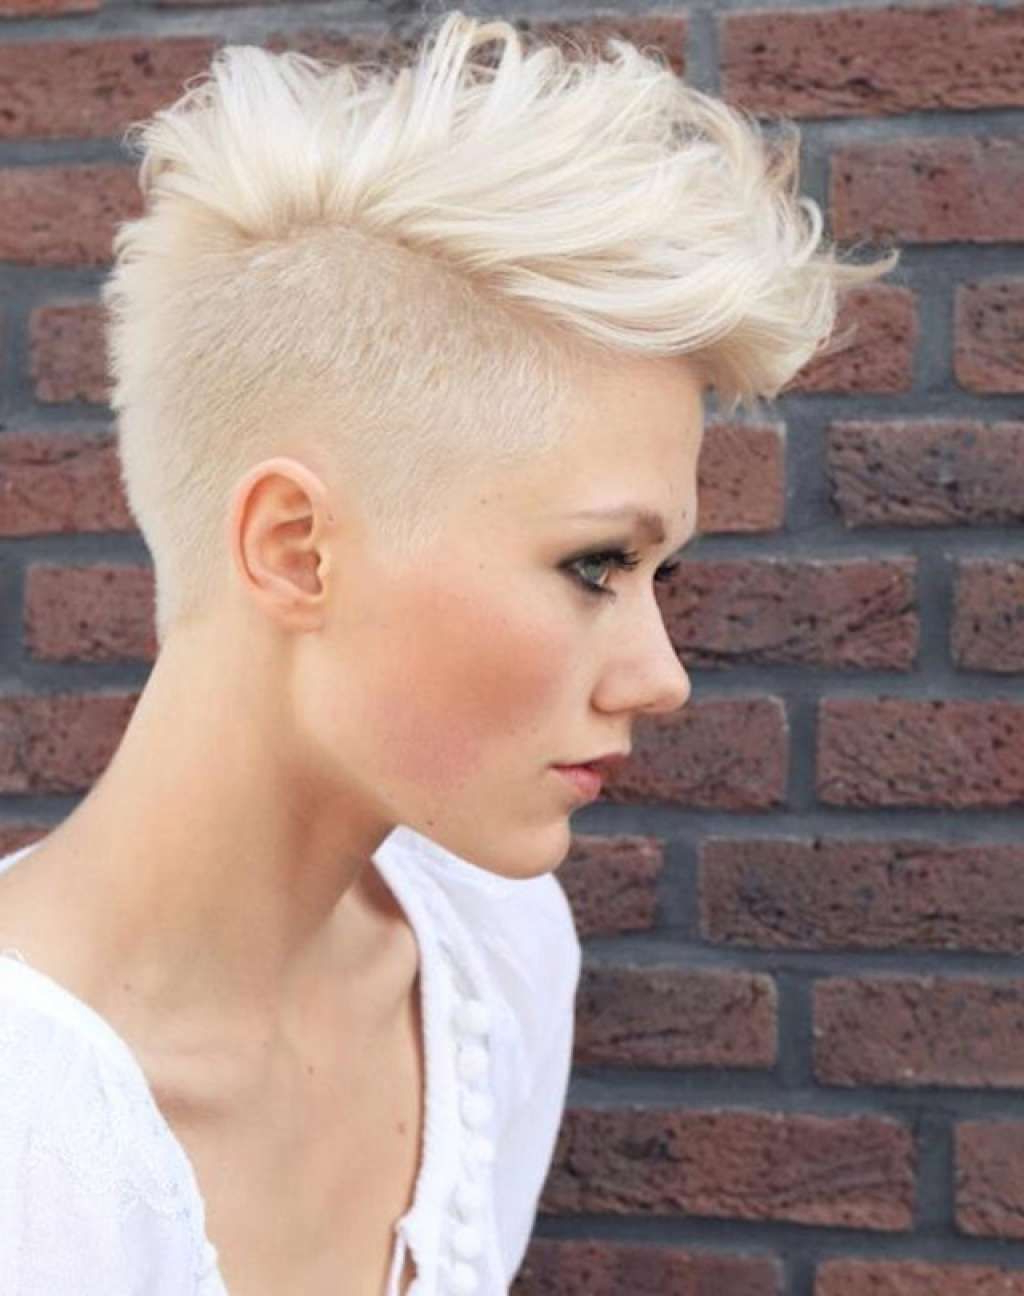 Preferred Bleached Feminine Mohawk Hairstyles With Buzz Cut Female Hairstyle With Long Top :: One1lady :: #hair (View 2 of 20)